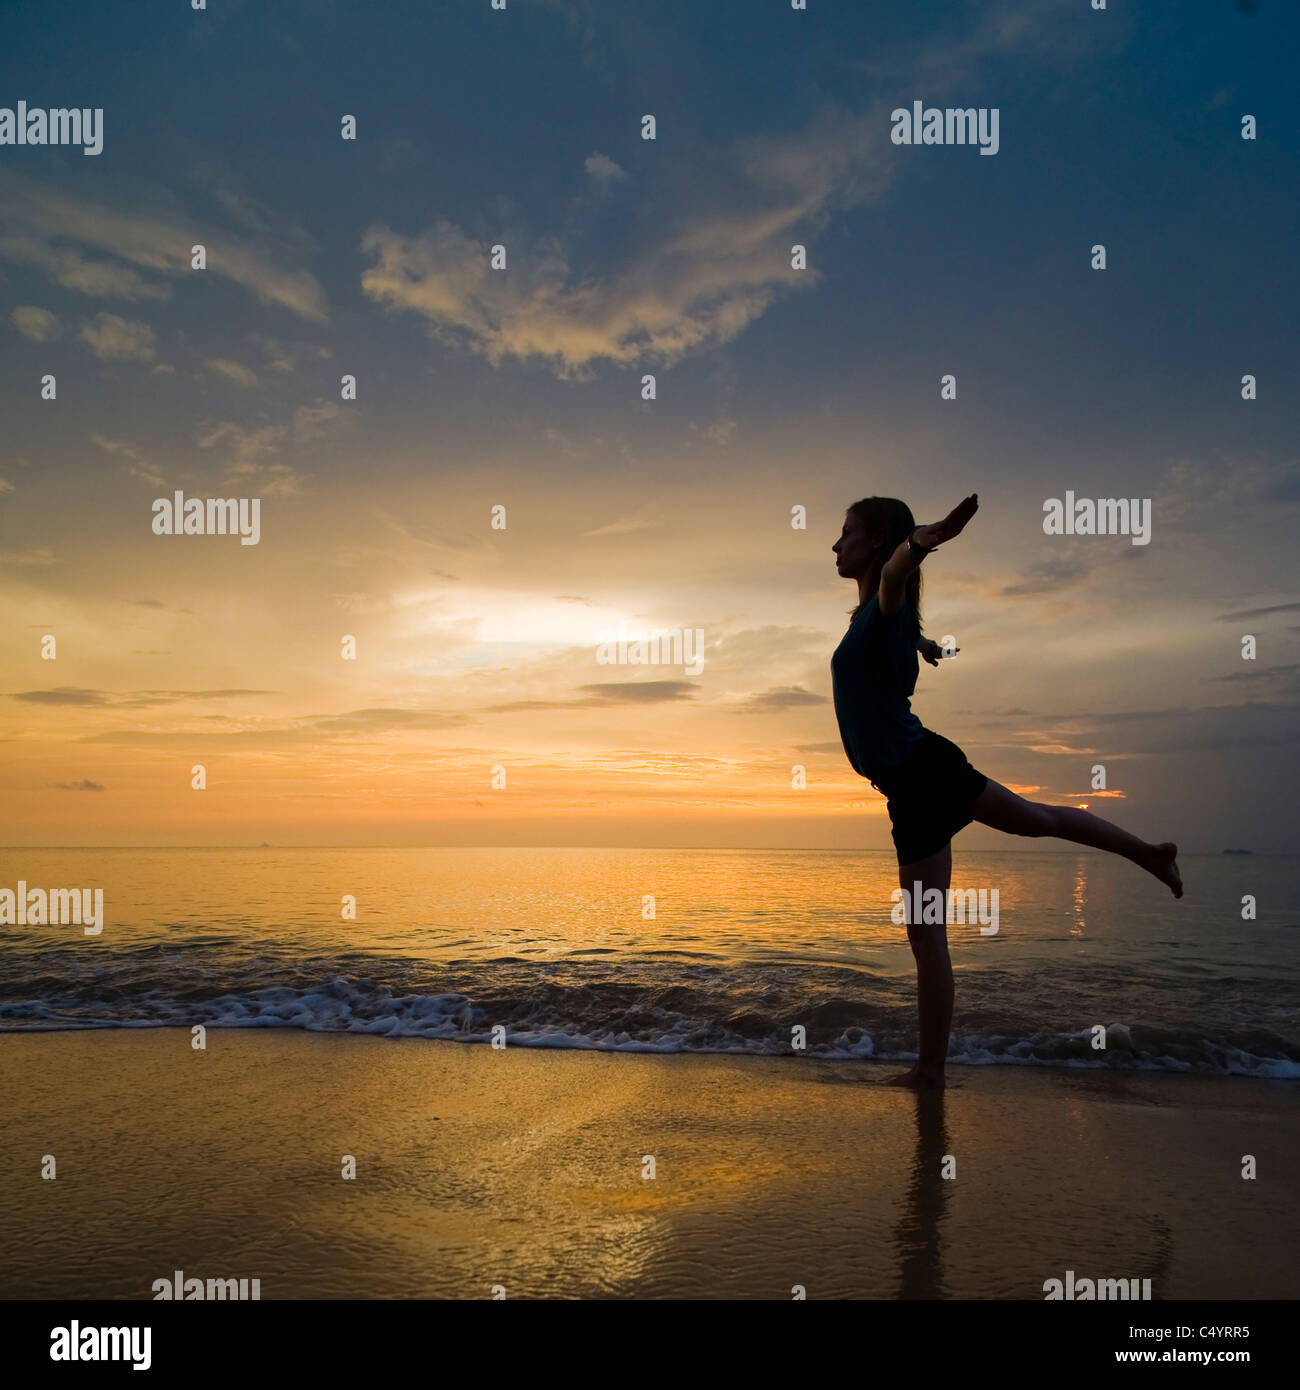 A young woman doing yoga exercises on the beach at sunset.Taken on Phra Ae Beach (Long Beach), Koh Lanta (Lanta - Stock Image